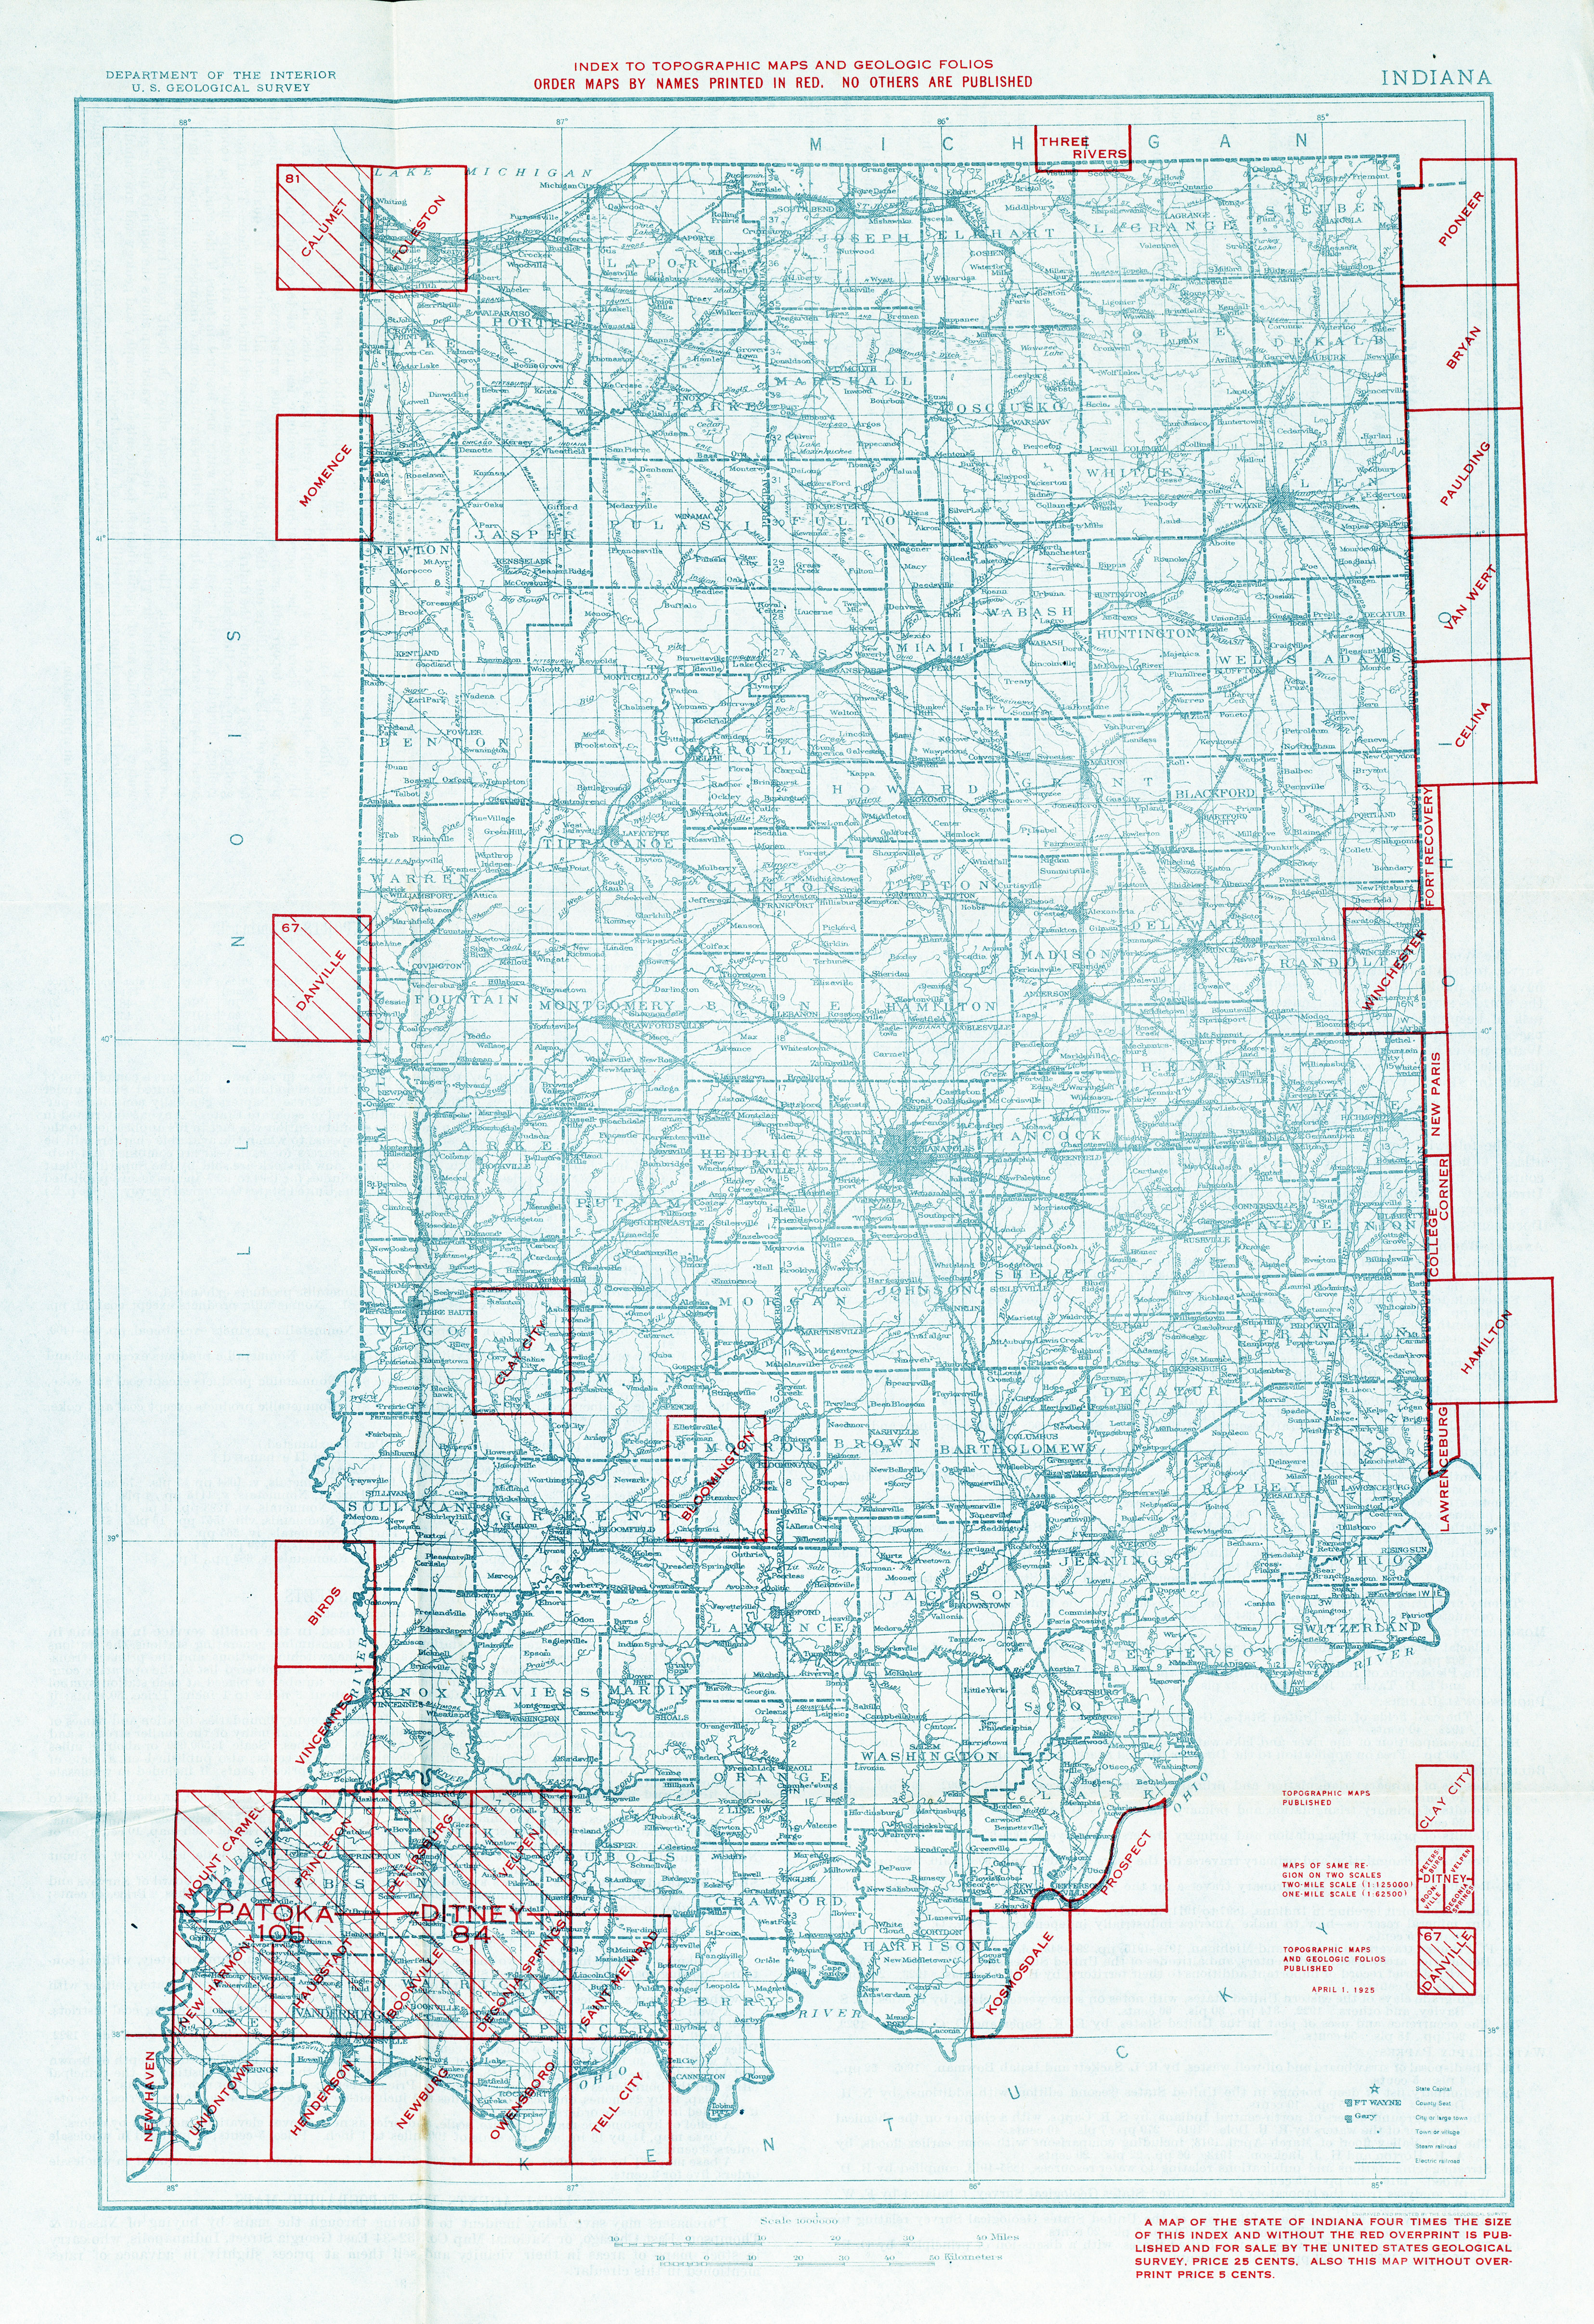 FAQ Maps Of Electric Railways Interurbans Indiana Railroads - Map of indiana